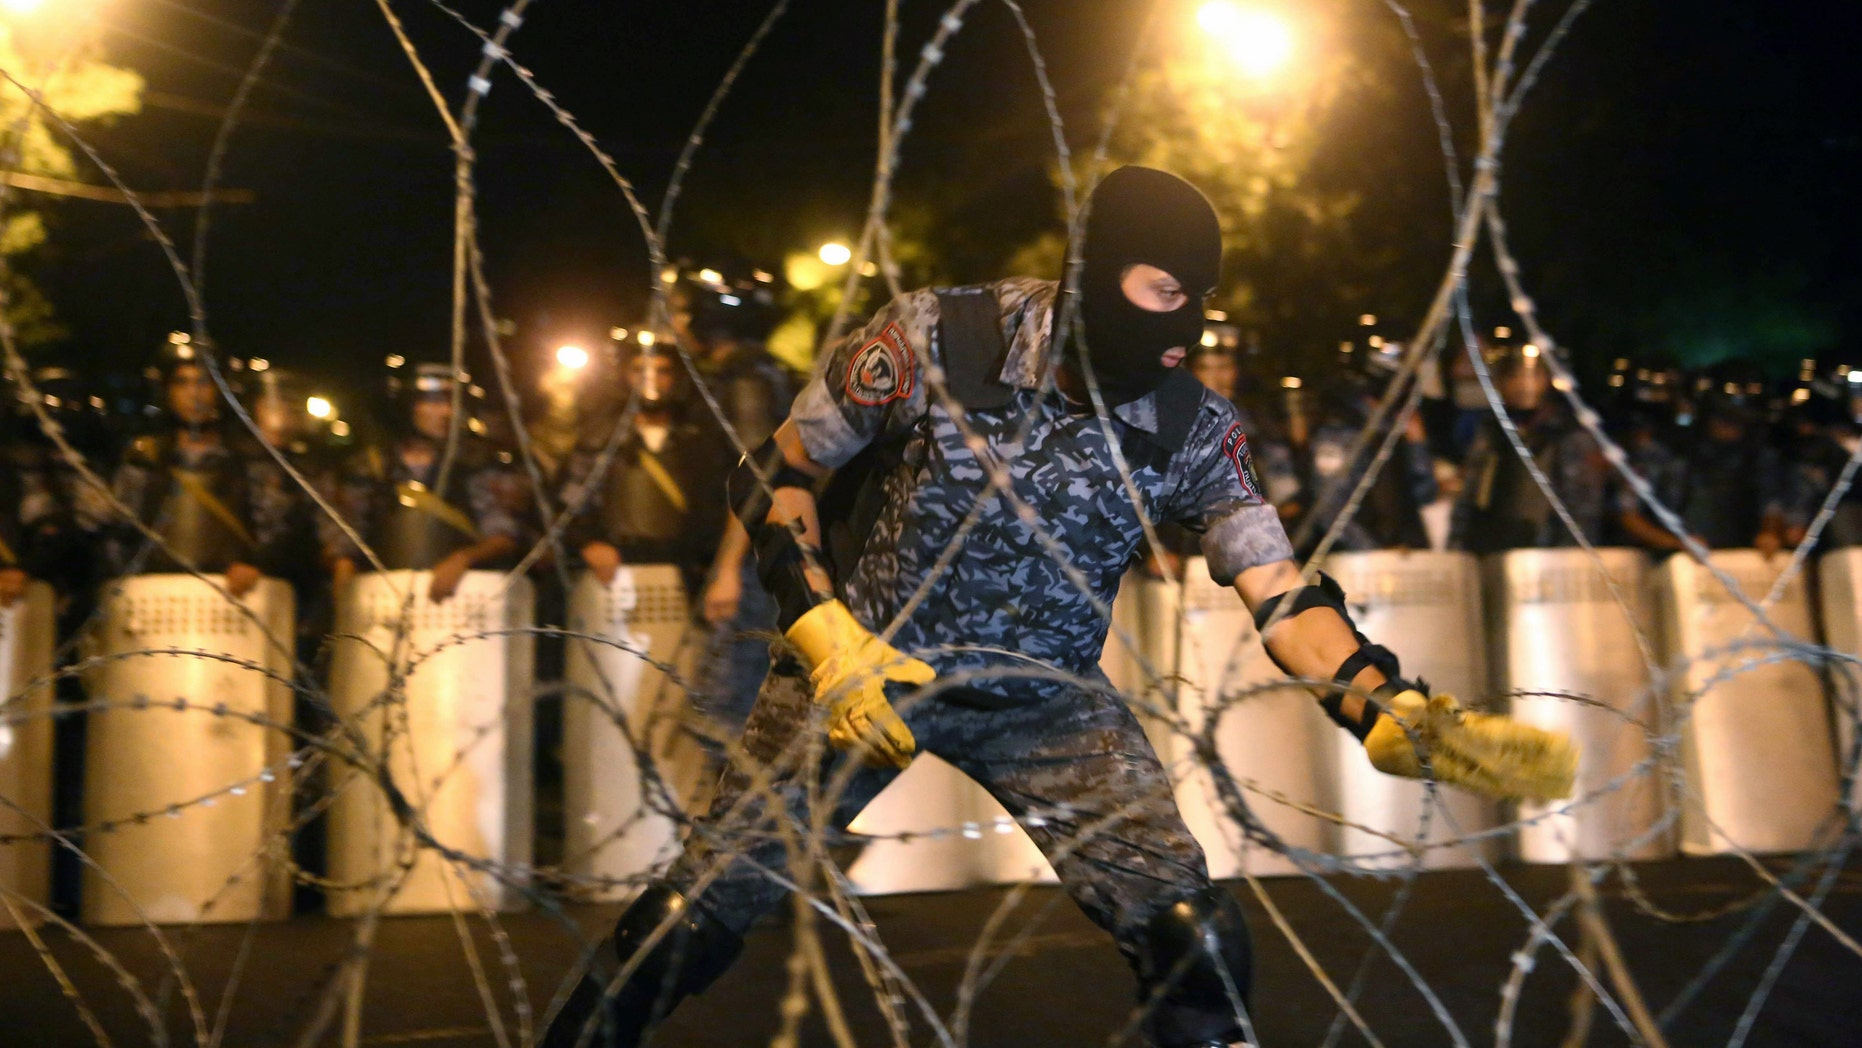 A riot police officer installs barbed wire during an anti-government march in Armenia.